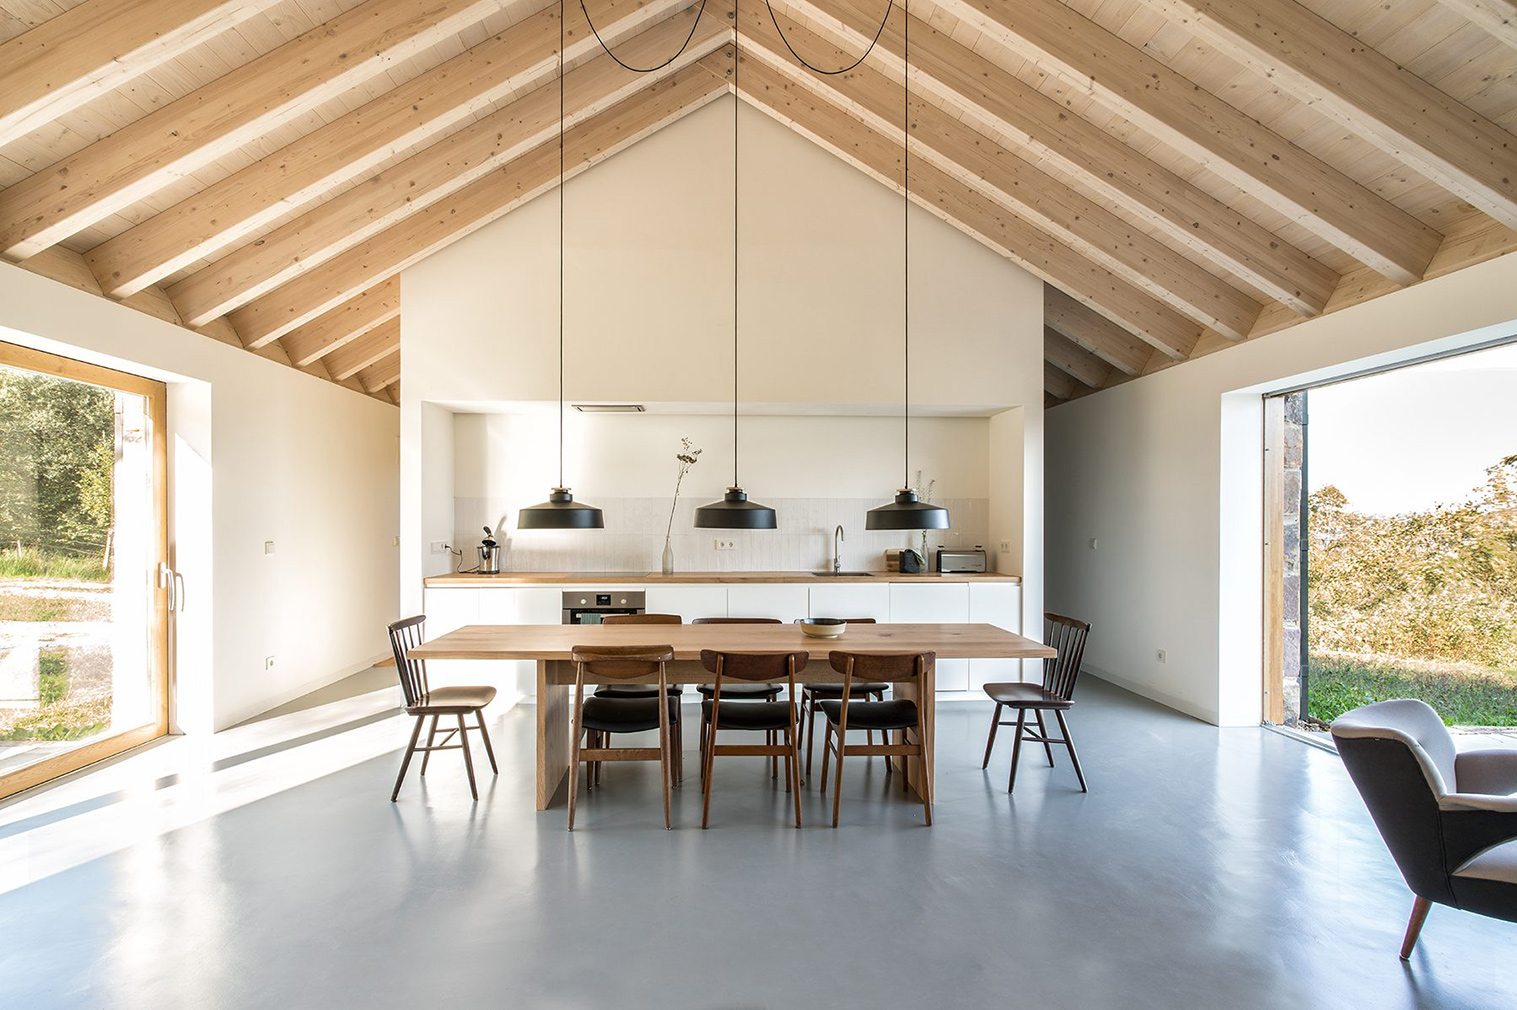 Holiday home of the week - Villa Slow by Laura Alvarez